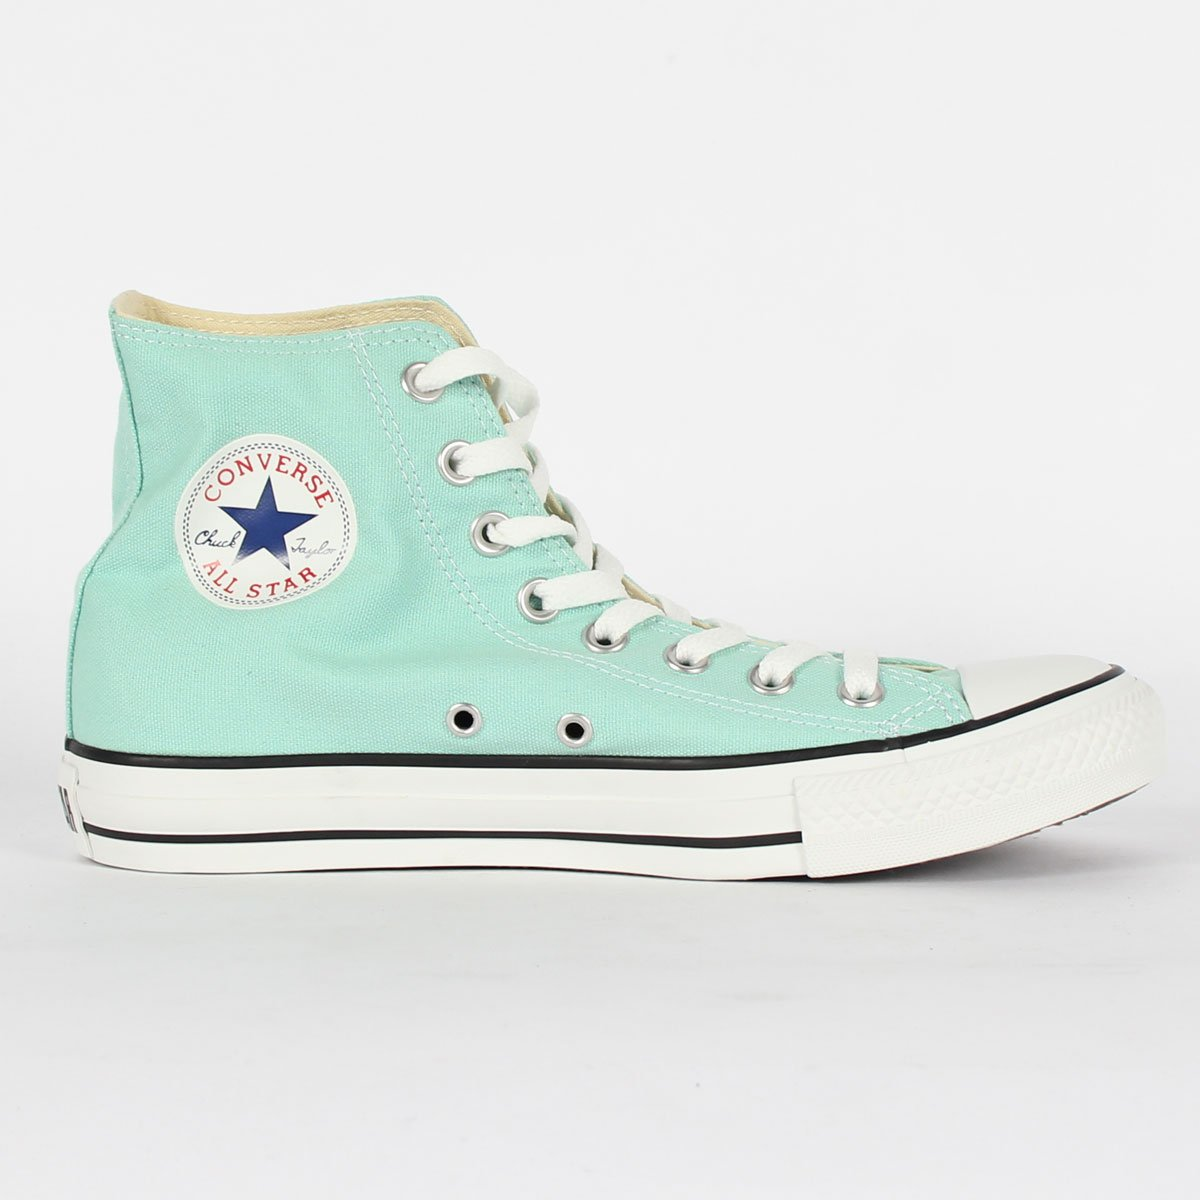 Converse Chuck Taylor All Star High Top Sneakers 136561F Beach Glass 9 M US